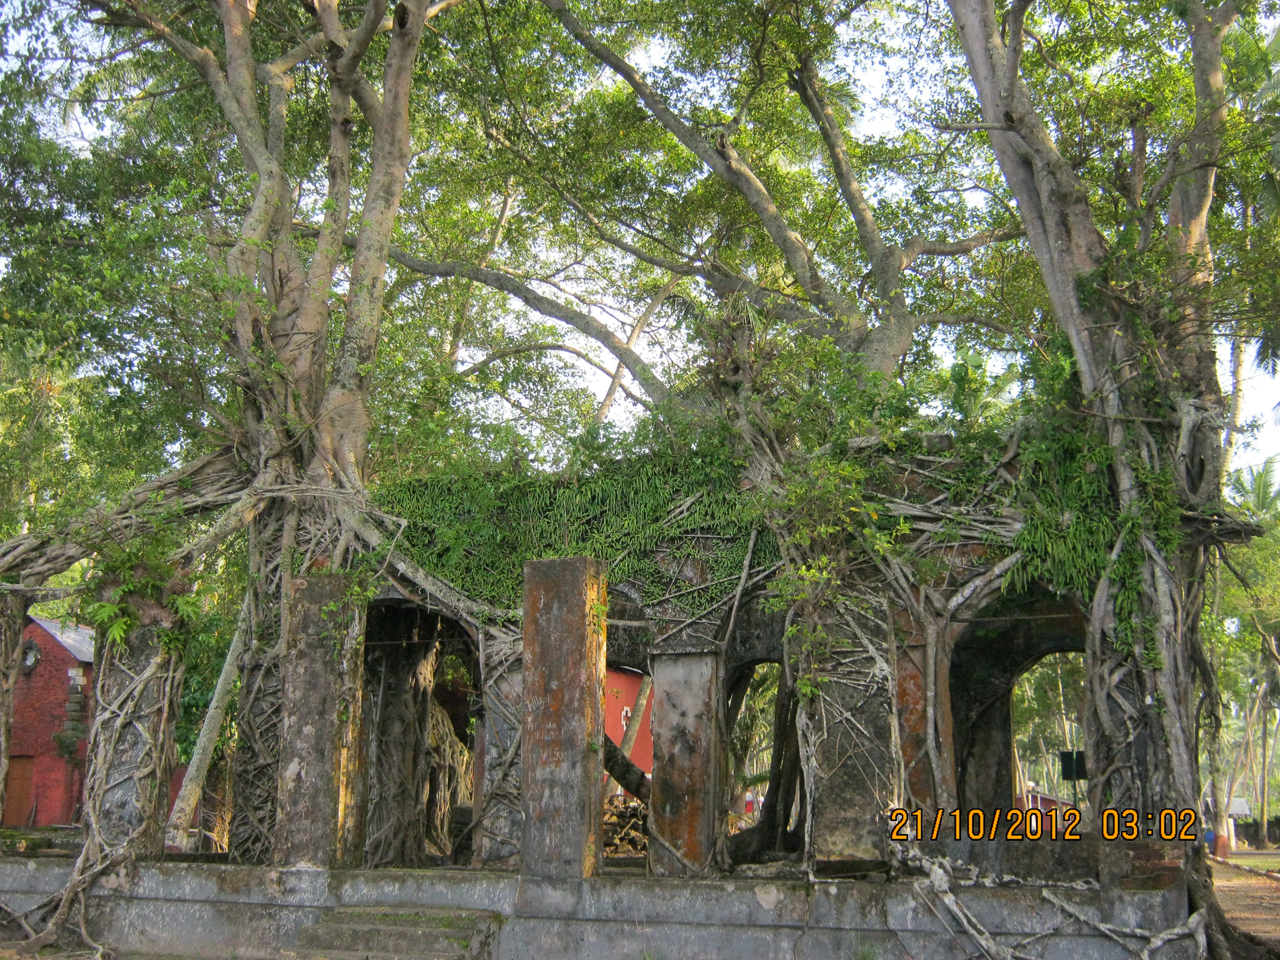 the old British buildings of Andaman island in ruins today, with trees growing above them